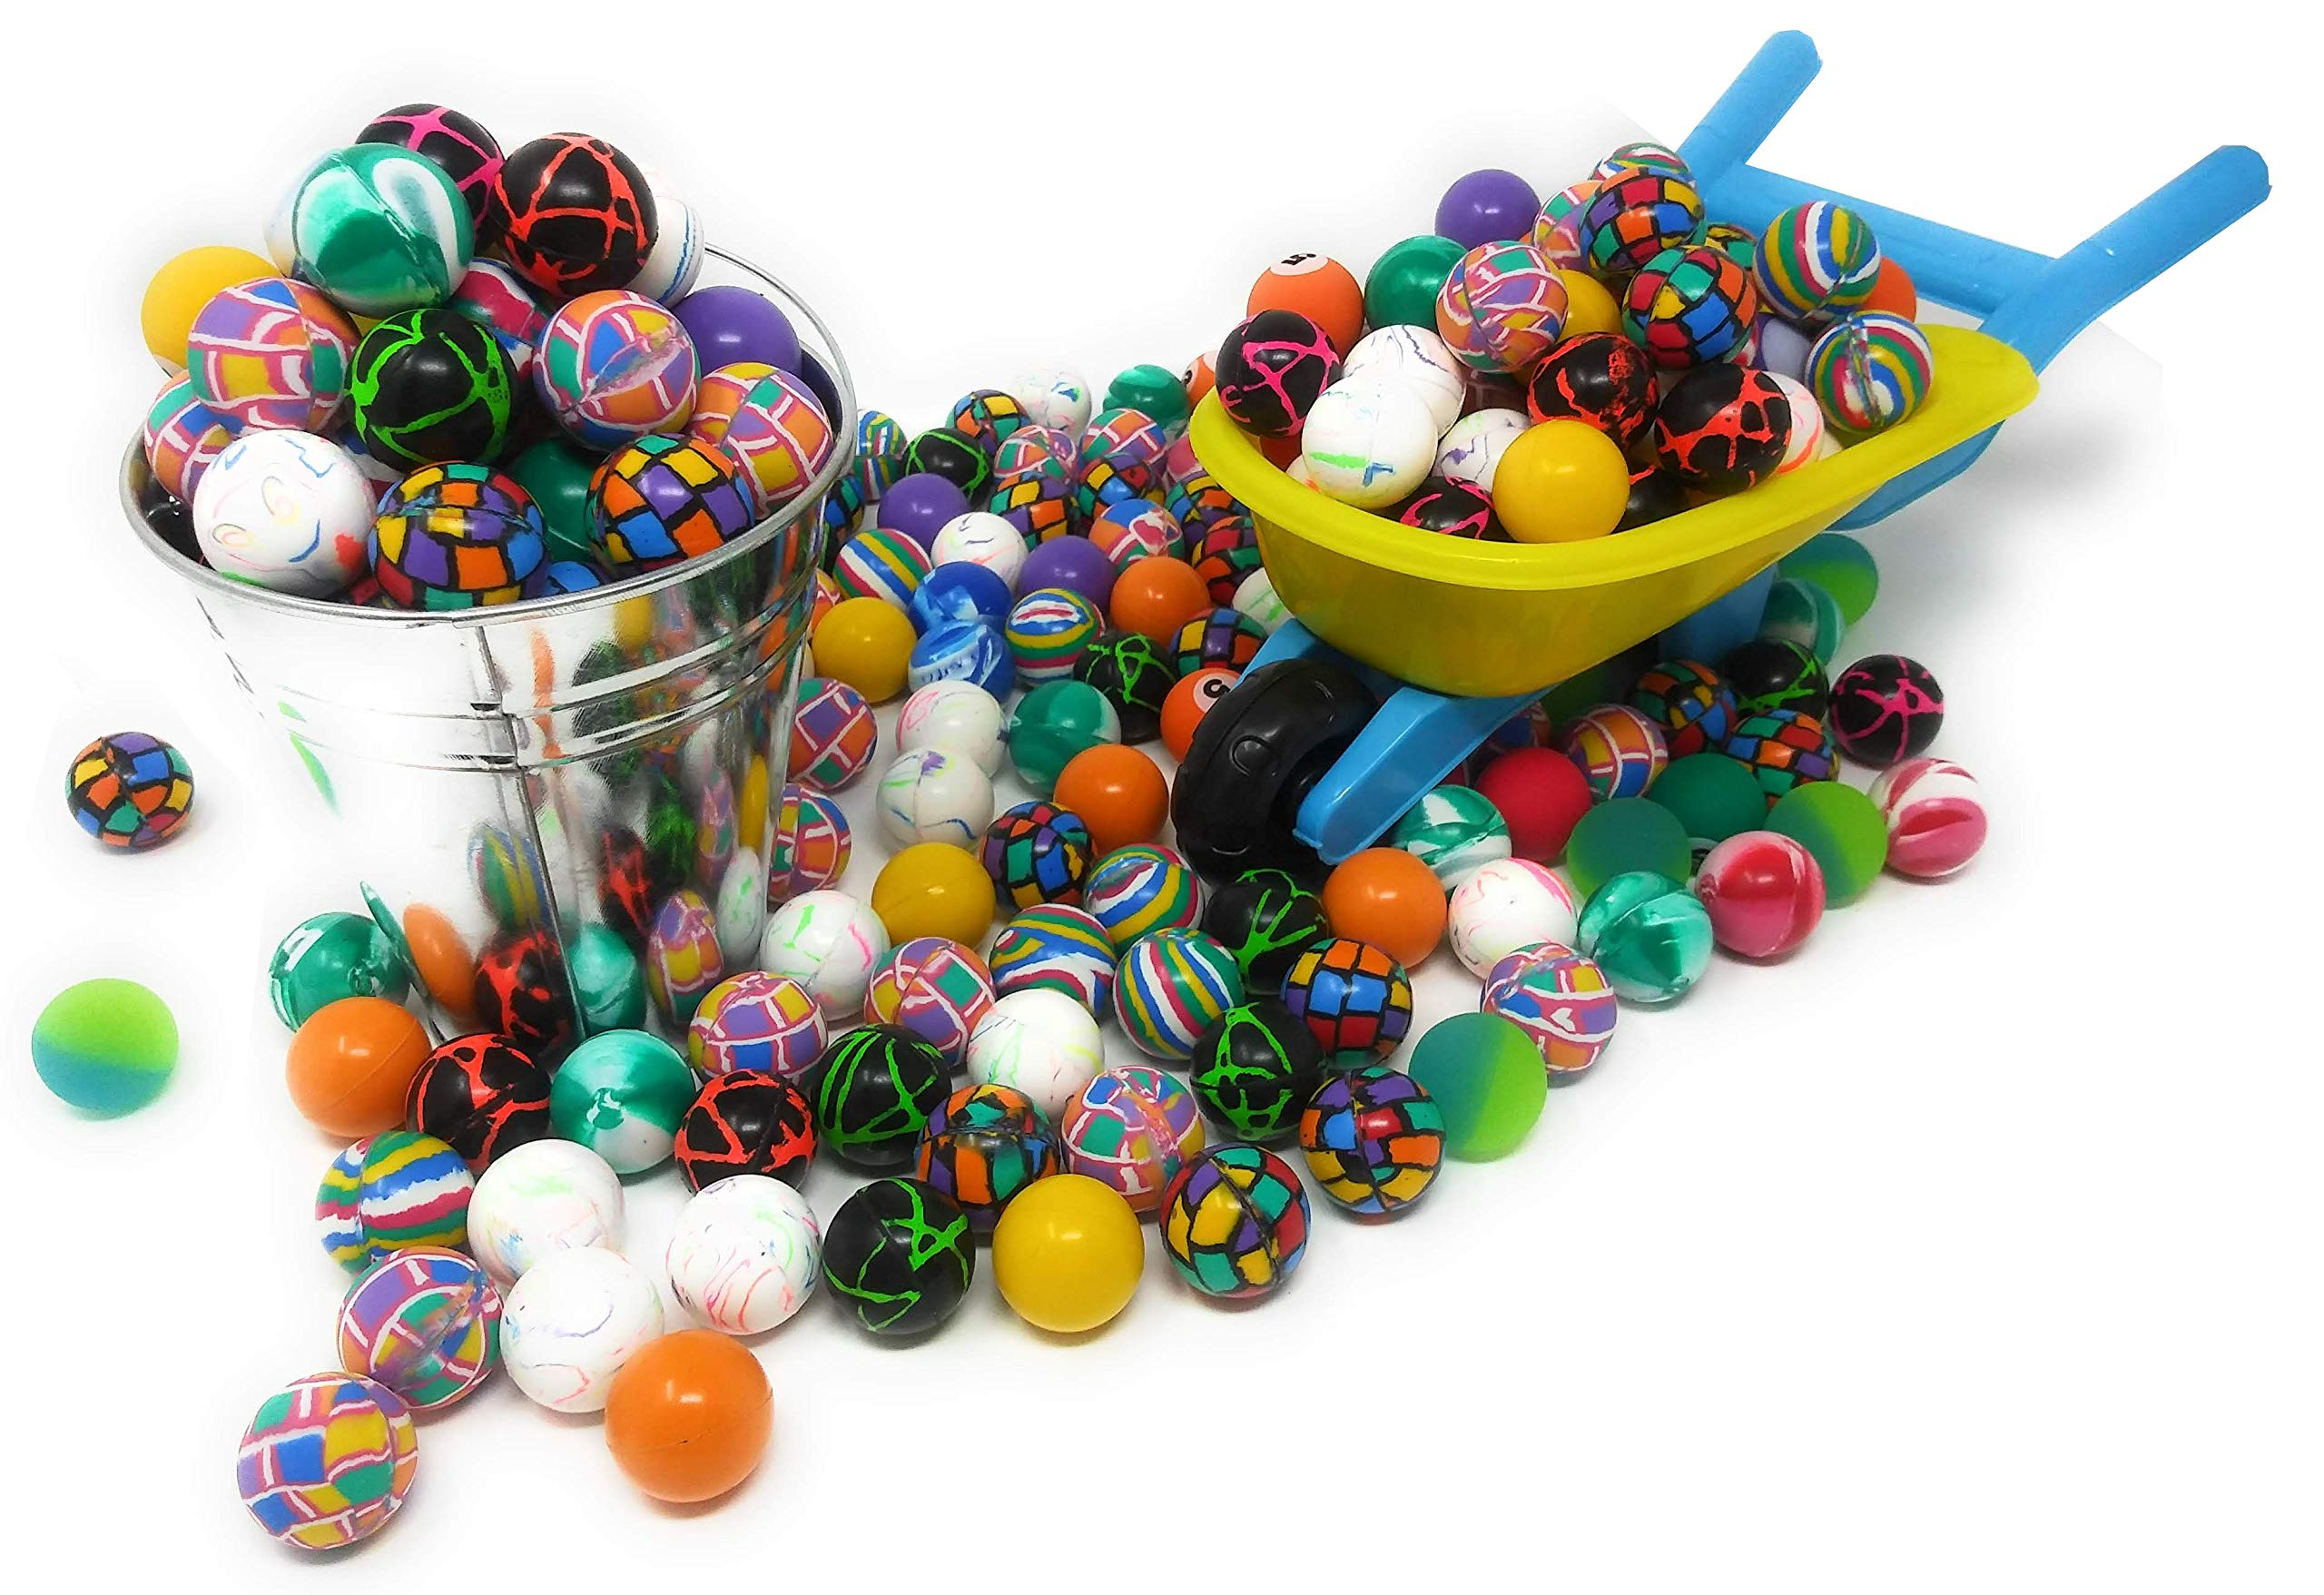 4E's Novelty Mega Bulk Assortment of 250 Bouncy Super Balls Mix for Kids, High Bouncing Swirl Rubber Balls, Great Bounce Party Favor Toys, Carnival Fun Prizes, for Boys and Girls 1'' by 4E's Novelty (Image #2)